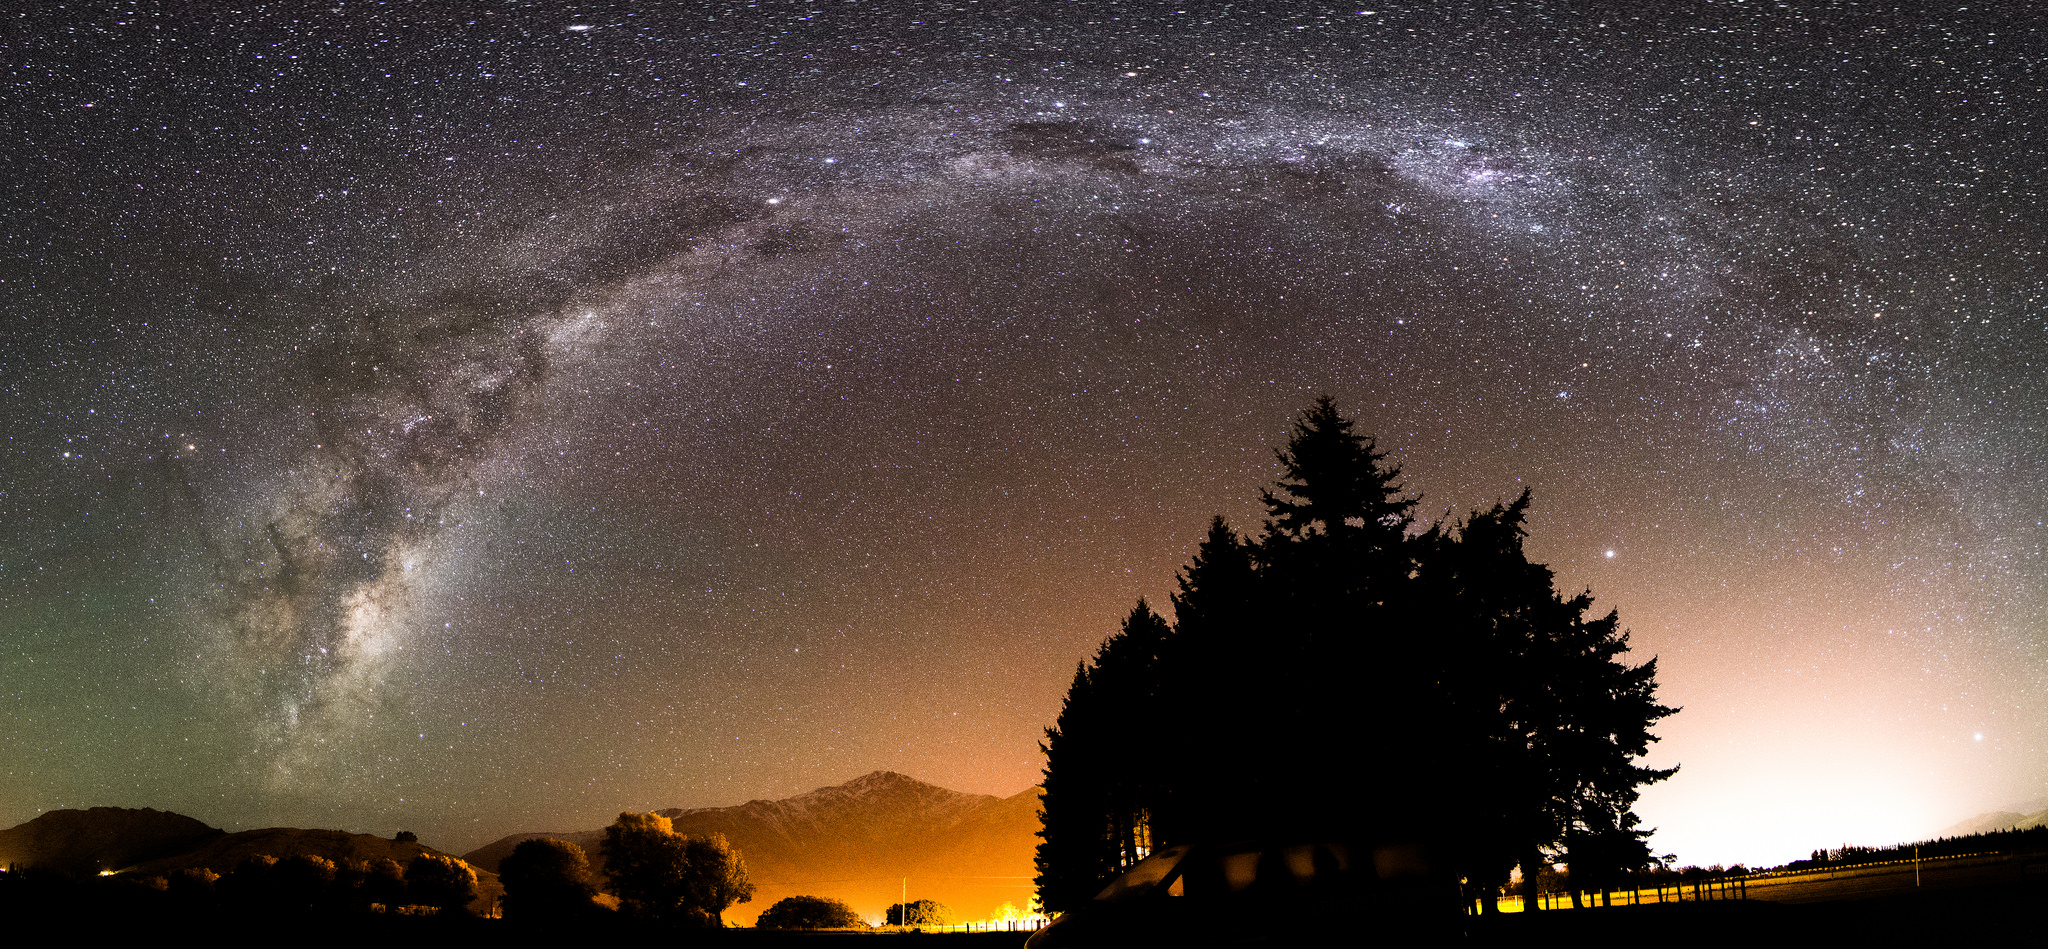 A night sky with a band of stars